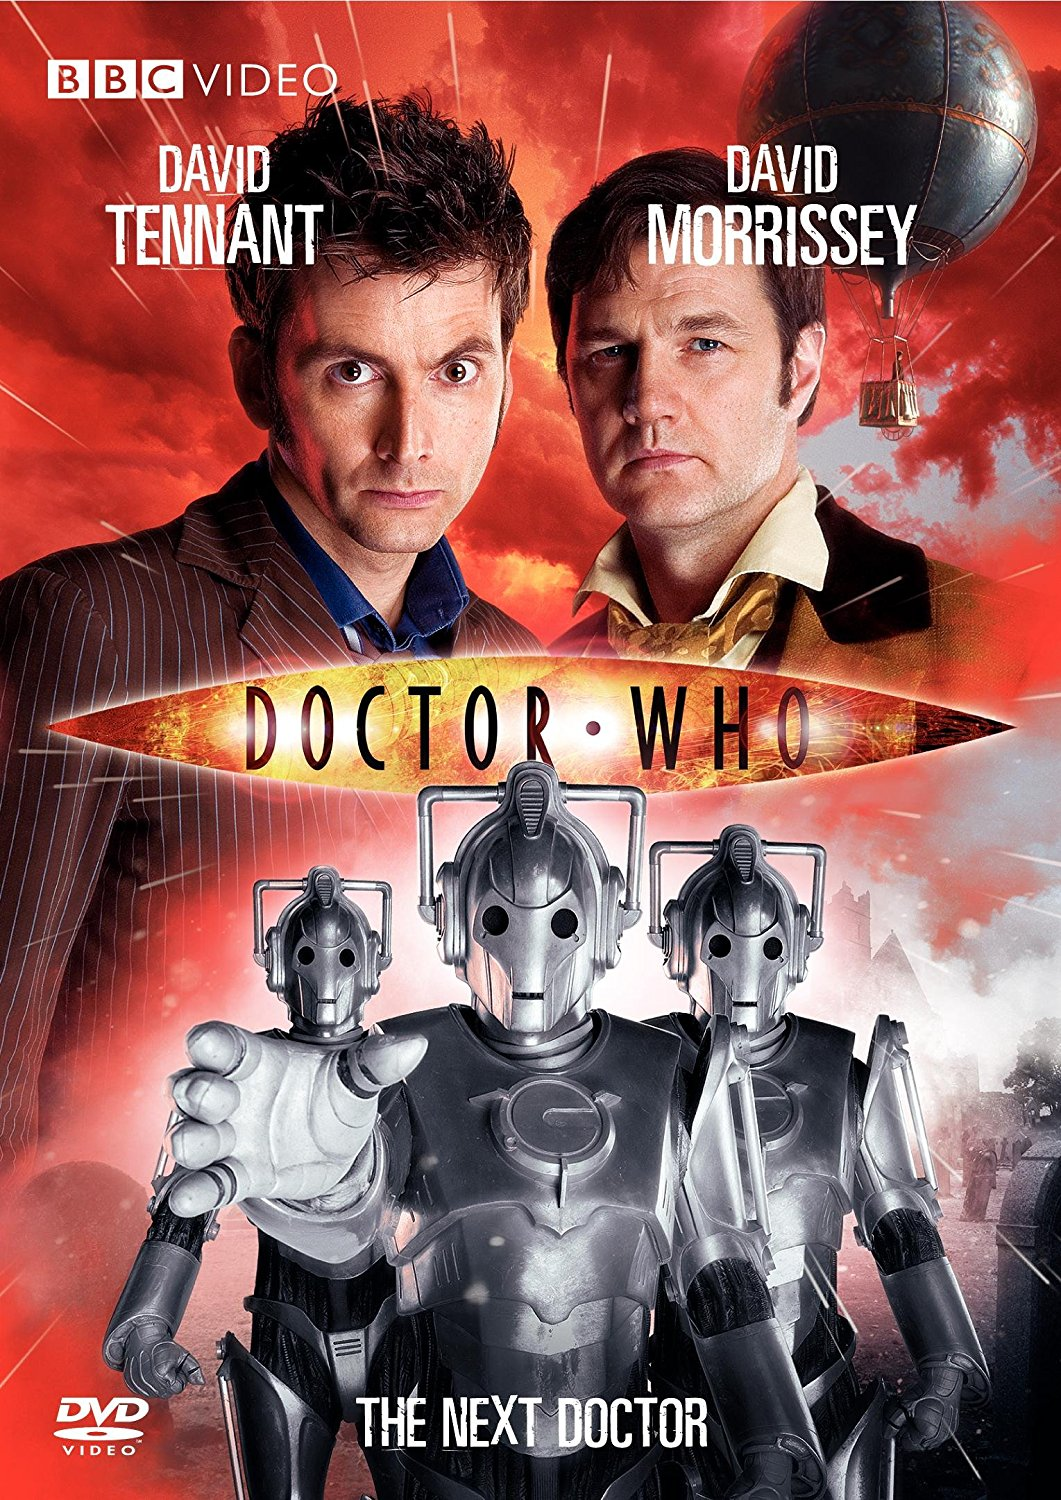 """Doctor Who - The Next Doctor"" DVD cover."